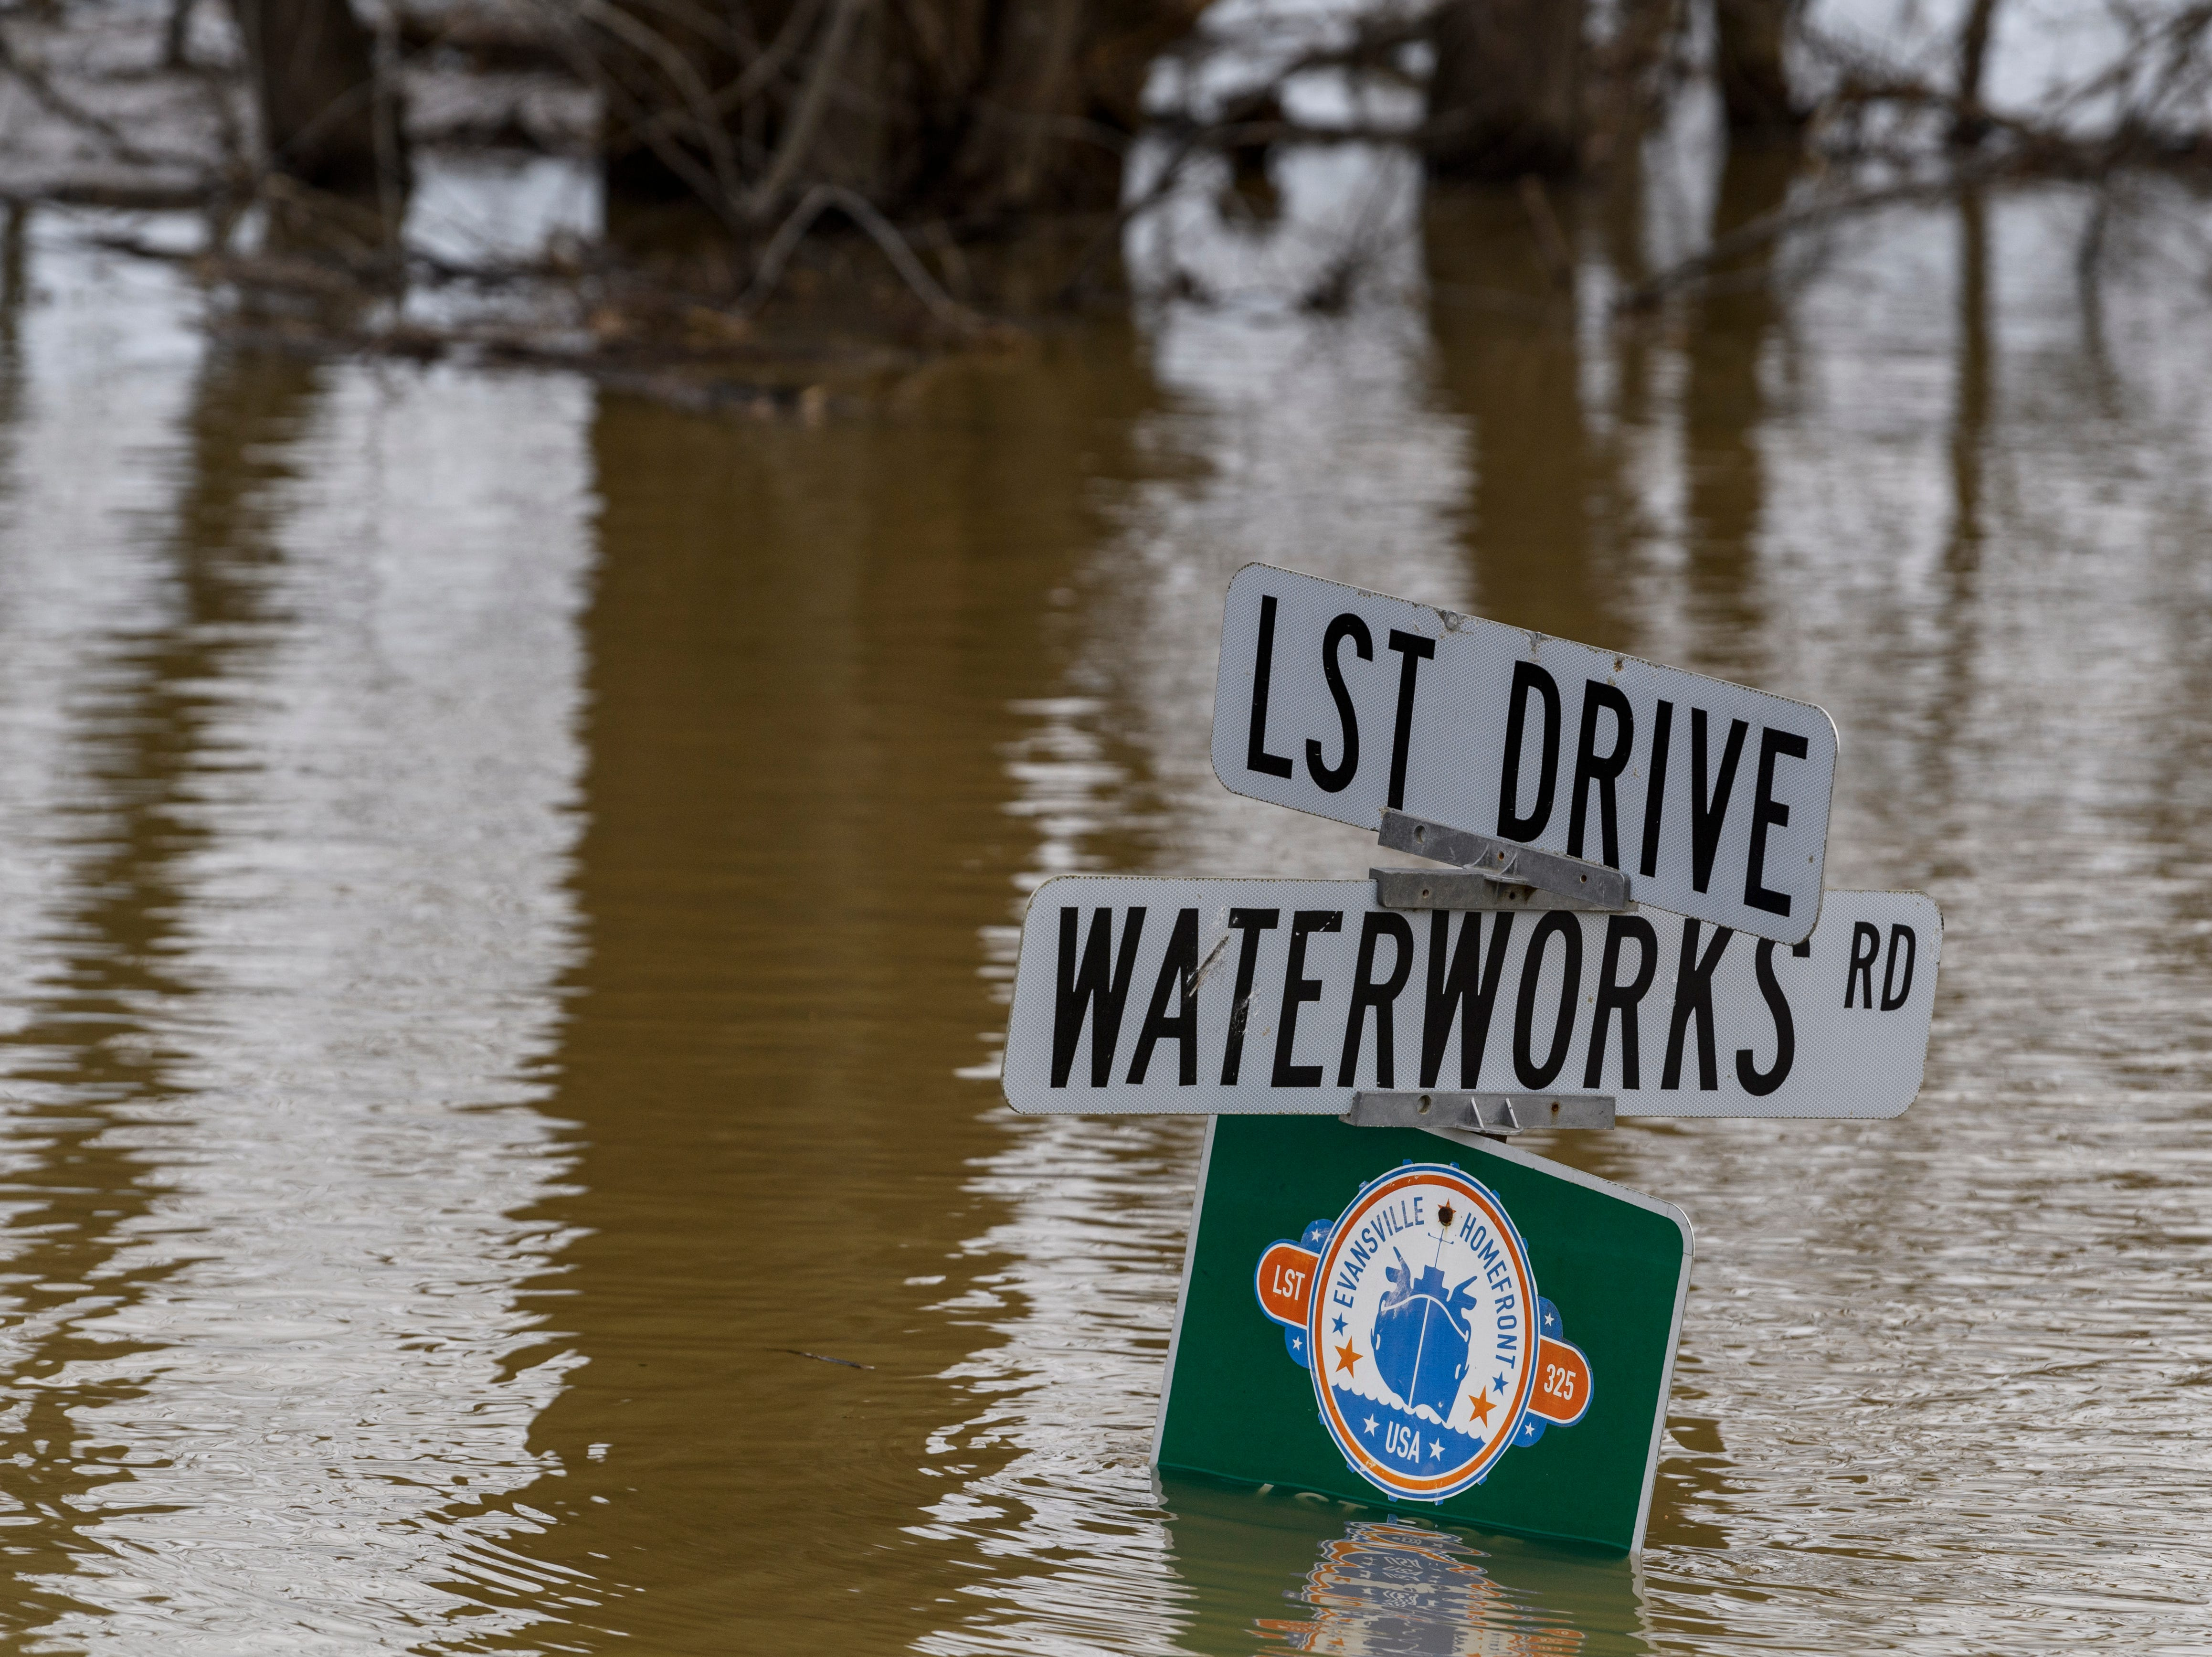 High water covers a large section of Waterworks Road at the intersection of LST Drive in Evansville, Ind., Tuesday, Feb. 19, 2019.